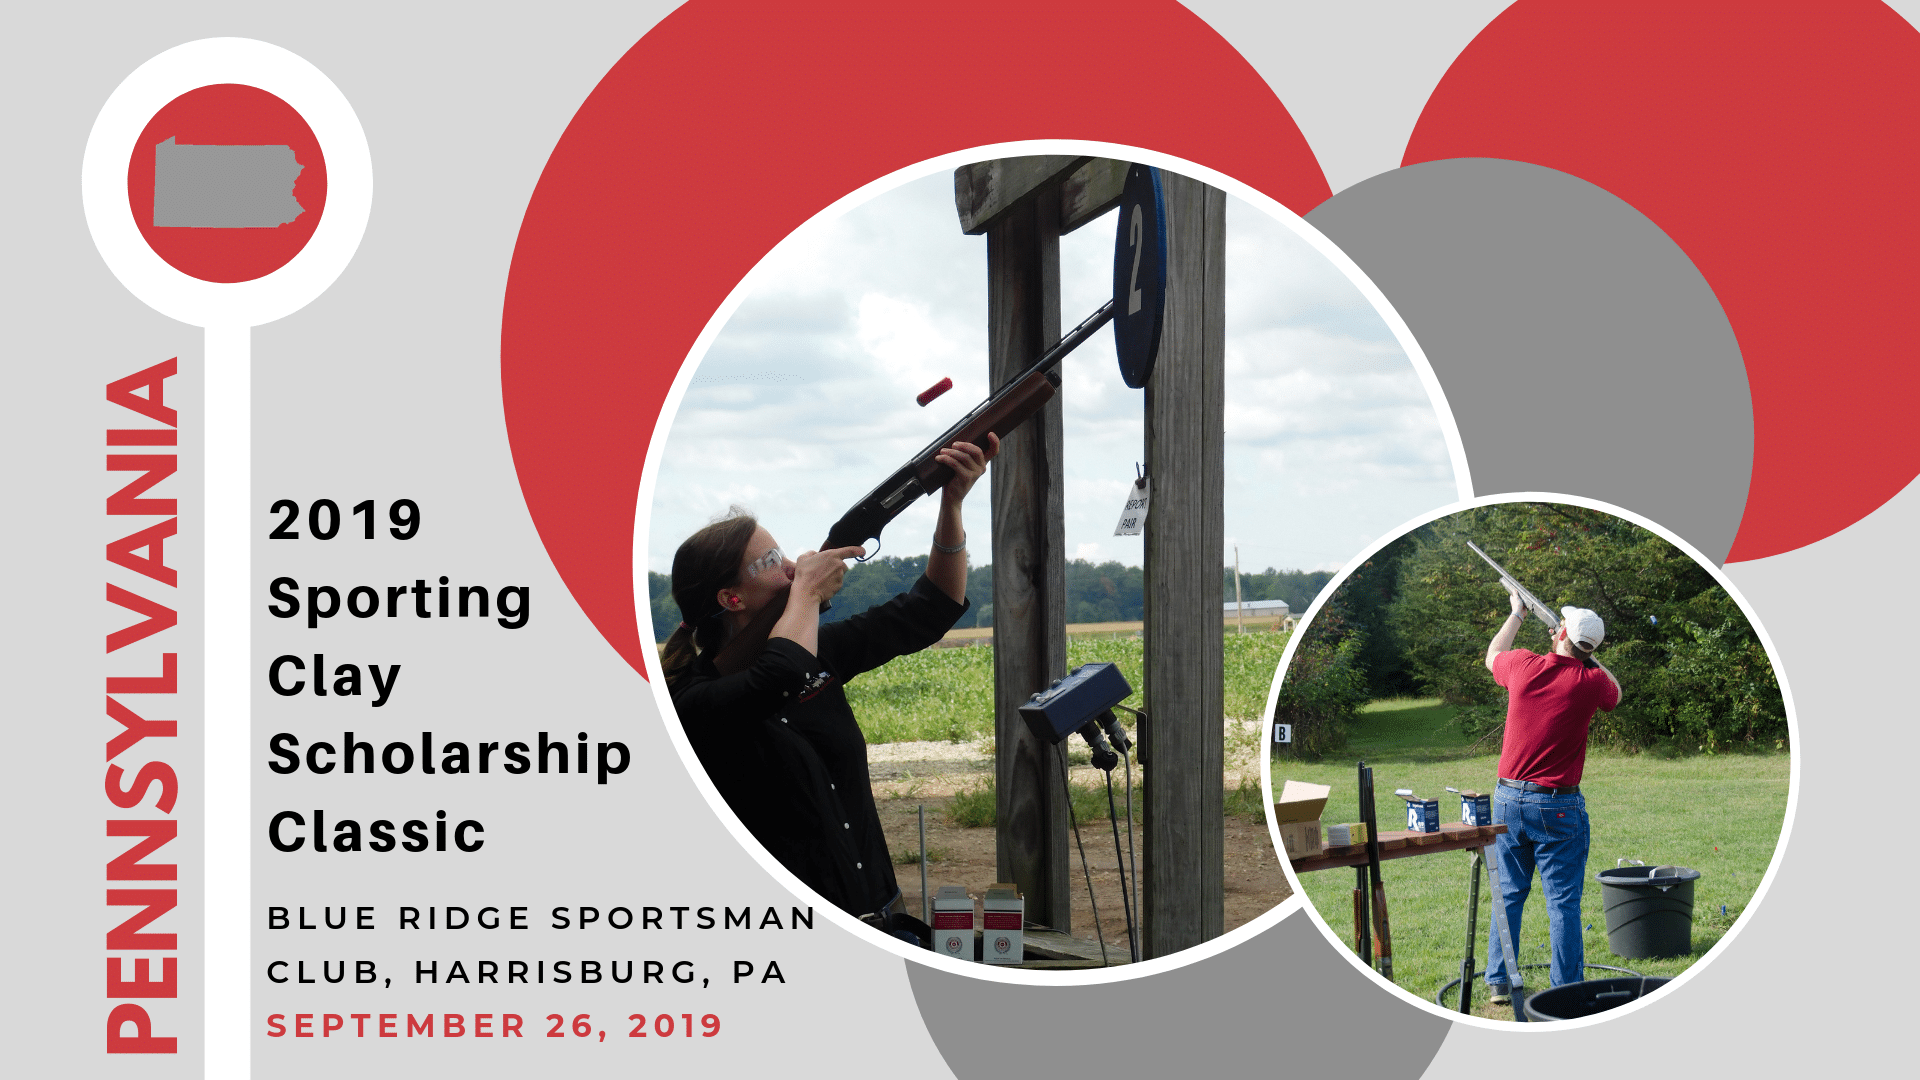 2019 Pennsylvania Sporting Clay Scholarship Classic